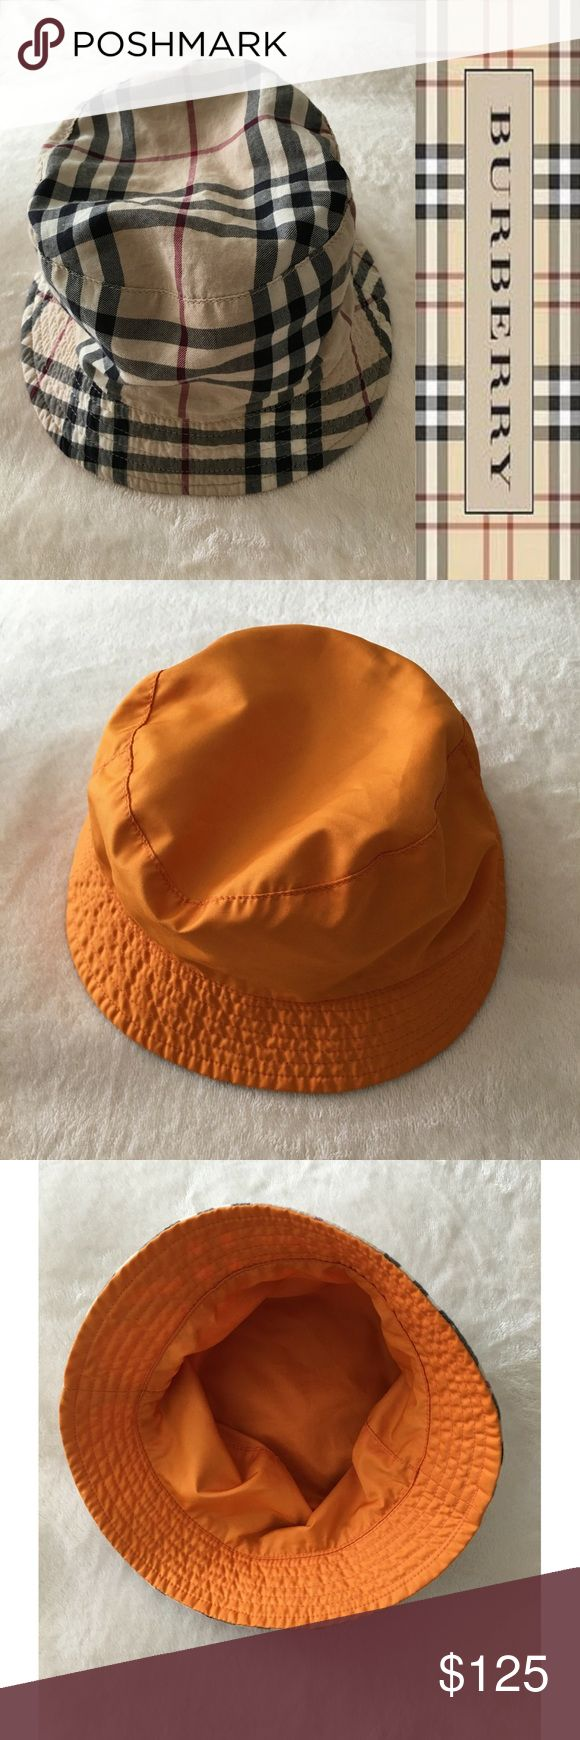 "Authentic Burberry Reversible Bucket Hat Authentic Burberry reversible original checker one side and orange other side.  Bought it at Bloomingdales only worn 2 times.  Circumference 24"" fits most. Burberry Accessories Hats"